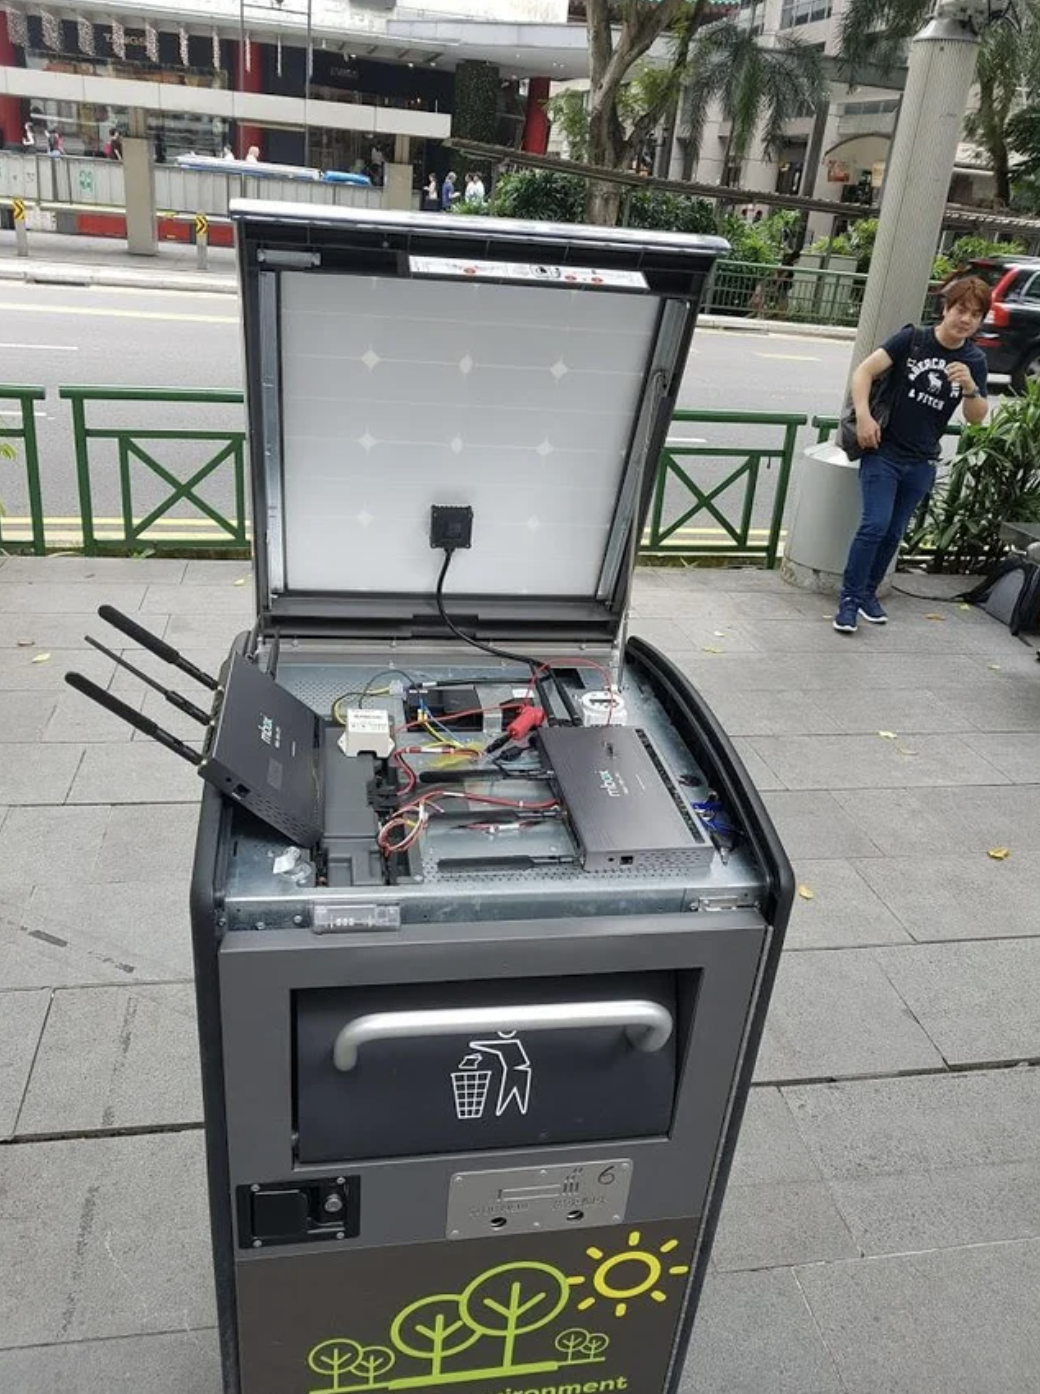 A public trash bin with modems, routers, and cords set up on top